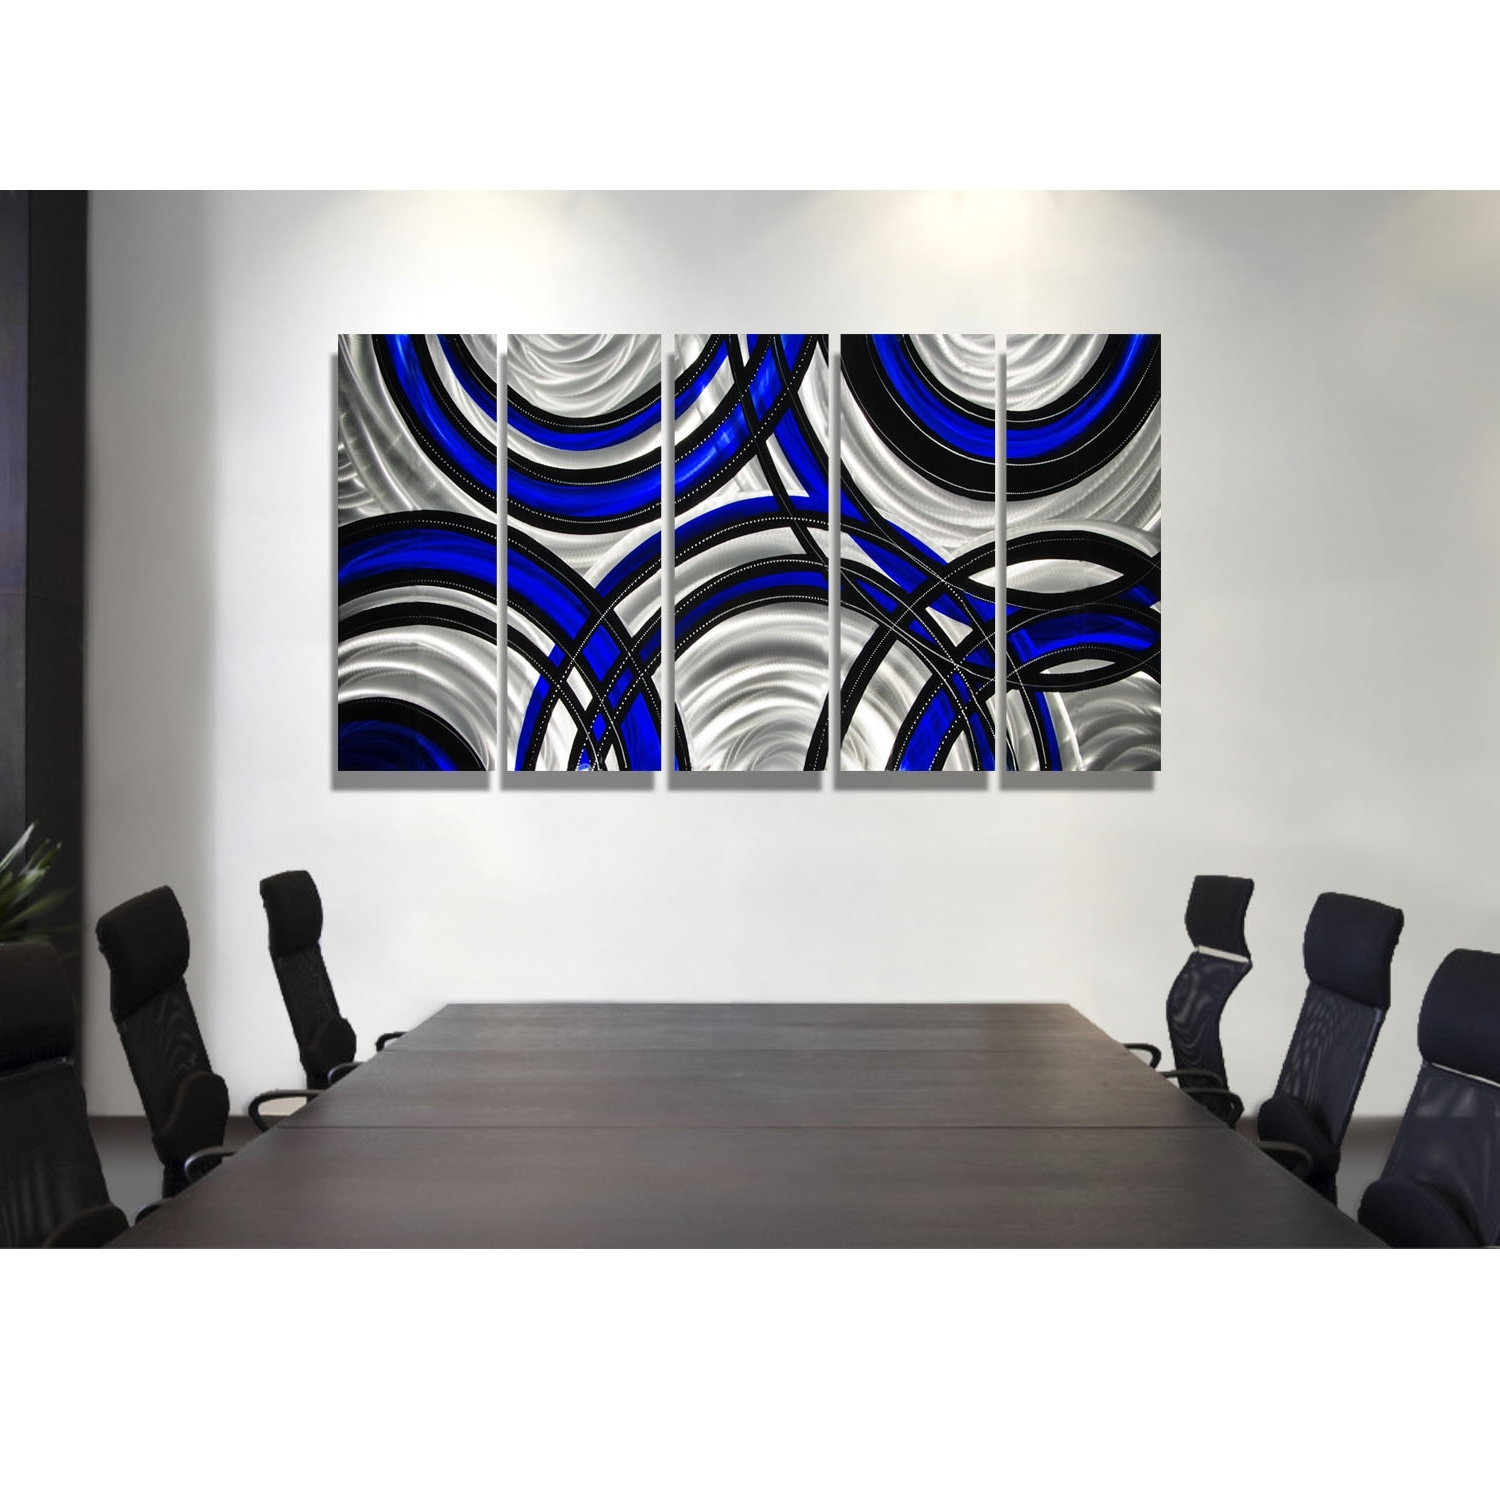 Most Recent Blue Wall Art Throughout Blue Synergy – Blue, Black And Silver Metal Wall Art – 5 Panel Wall (View 6 of 15)